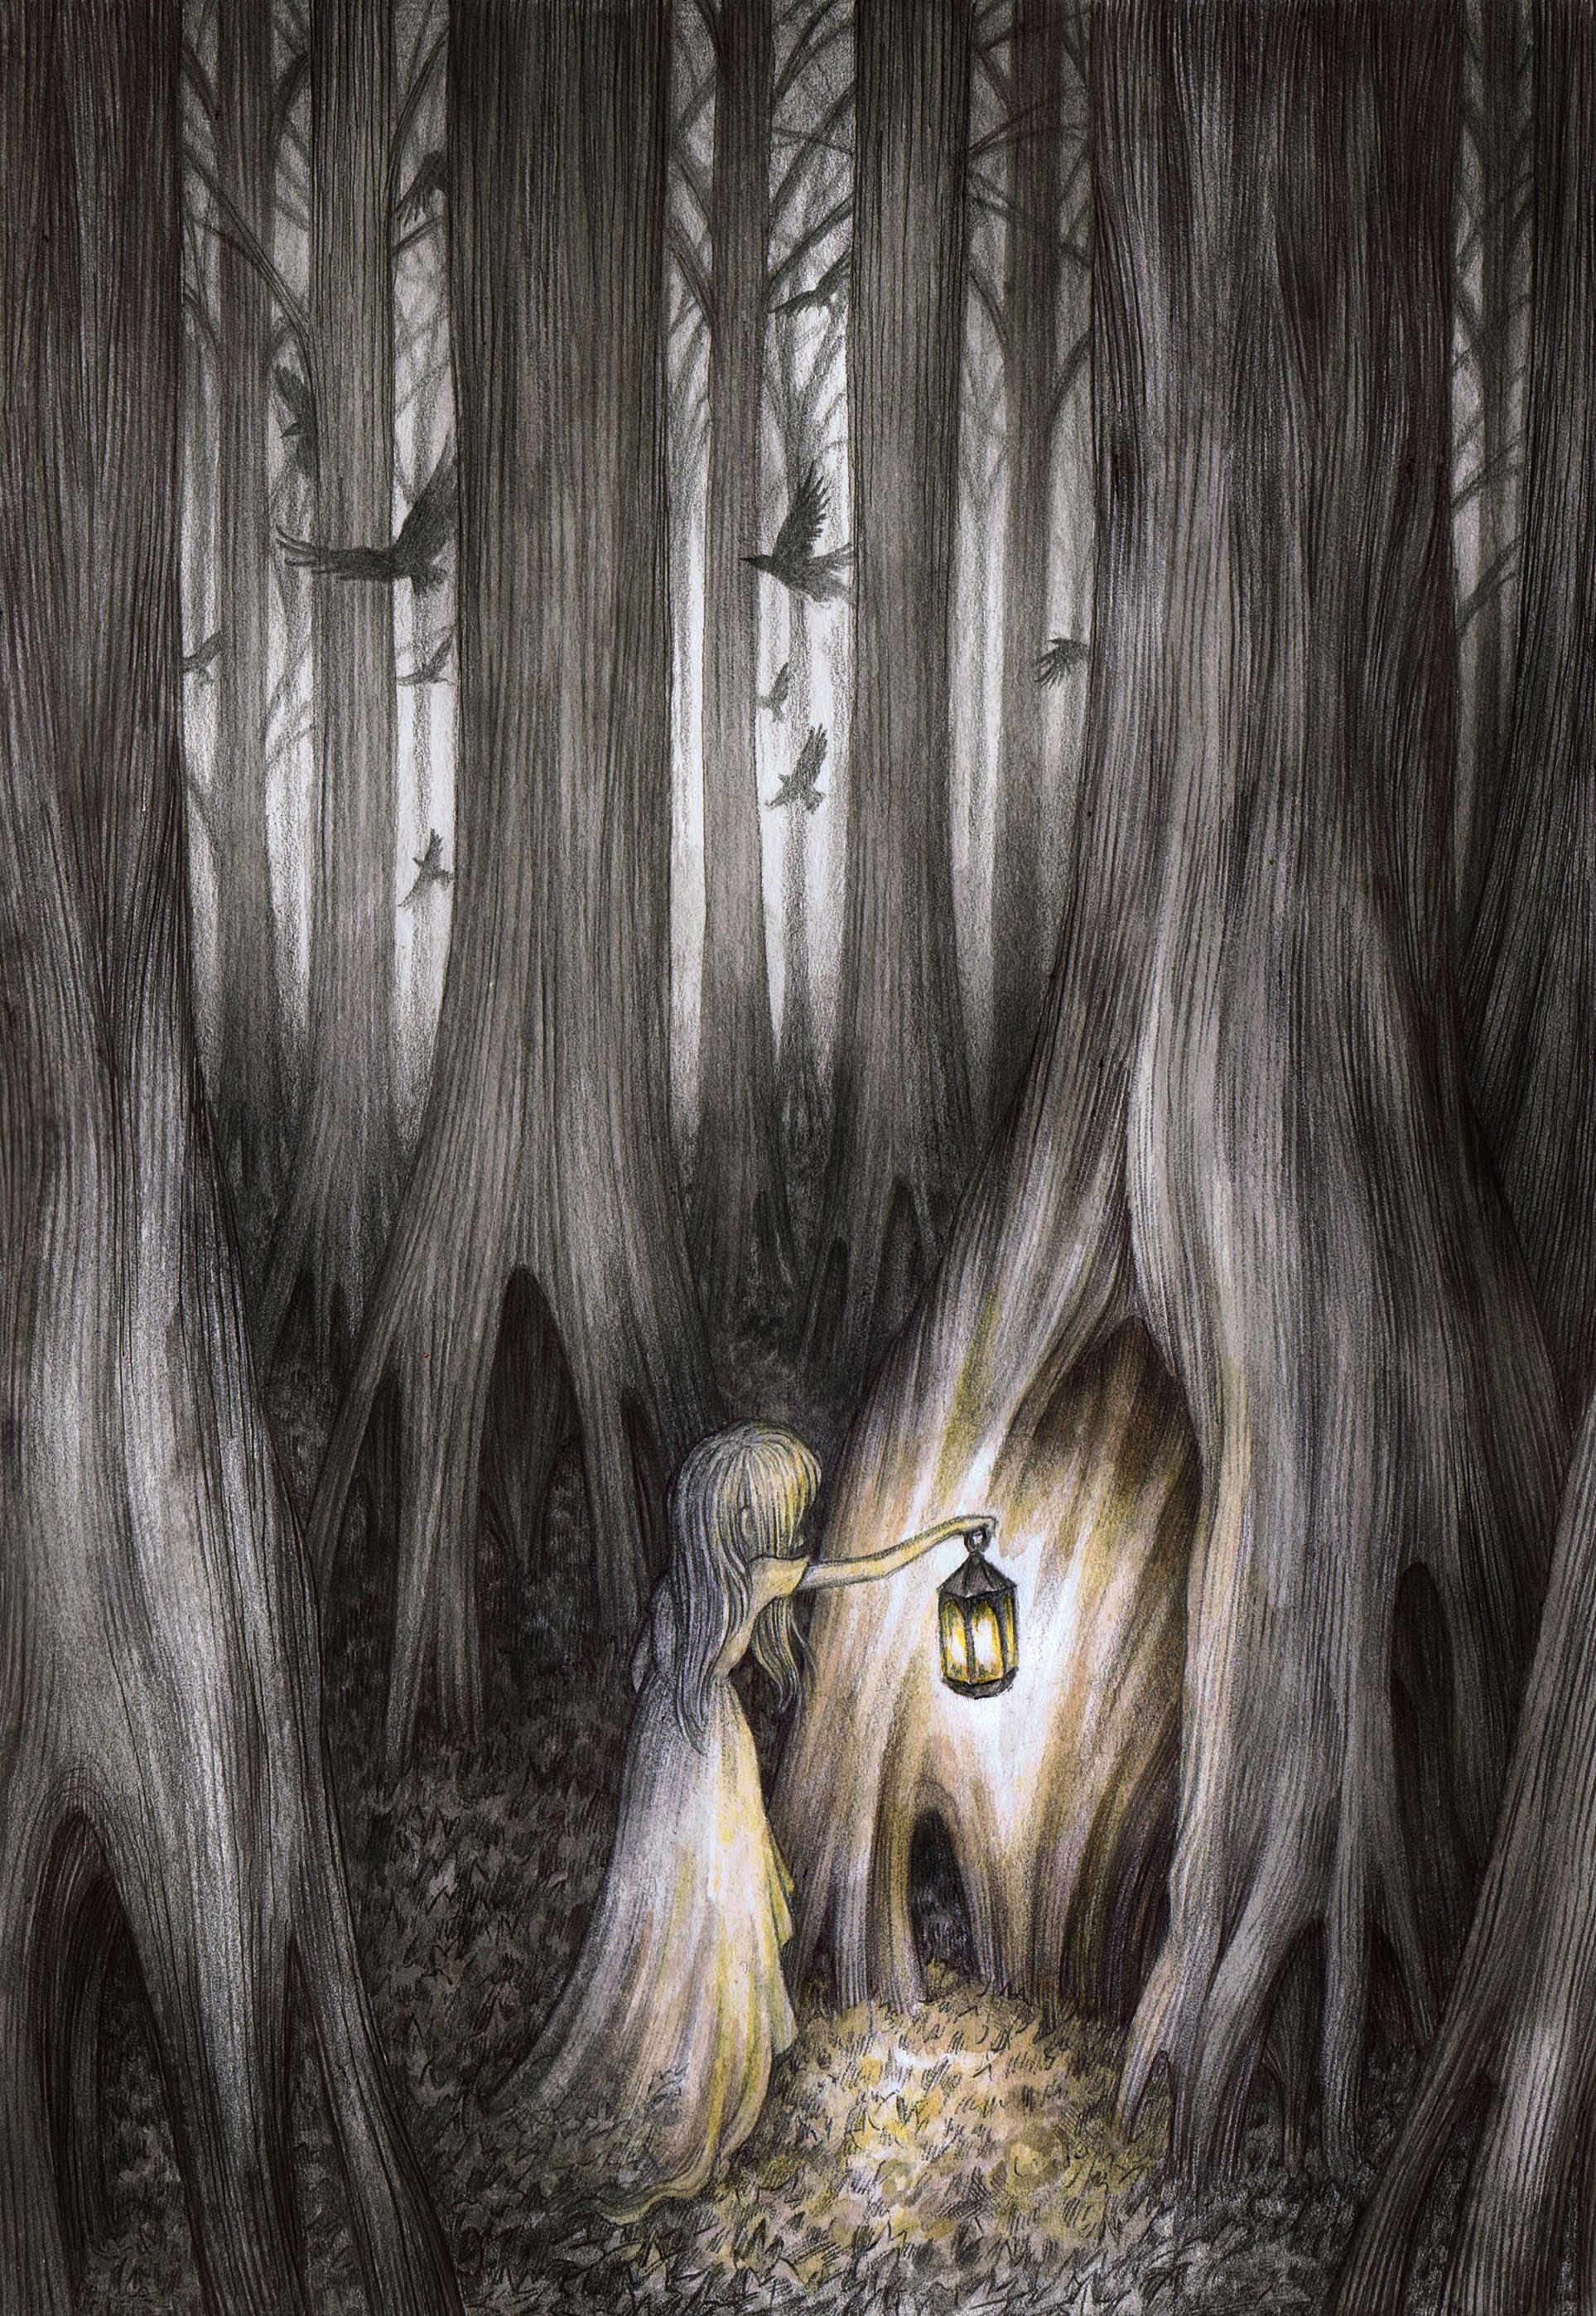 A LIGHT IN THE FOREST BY ADAM OEHLERS